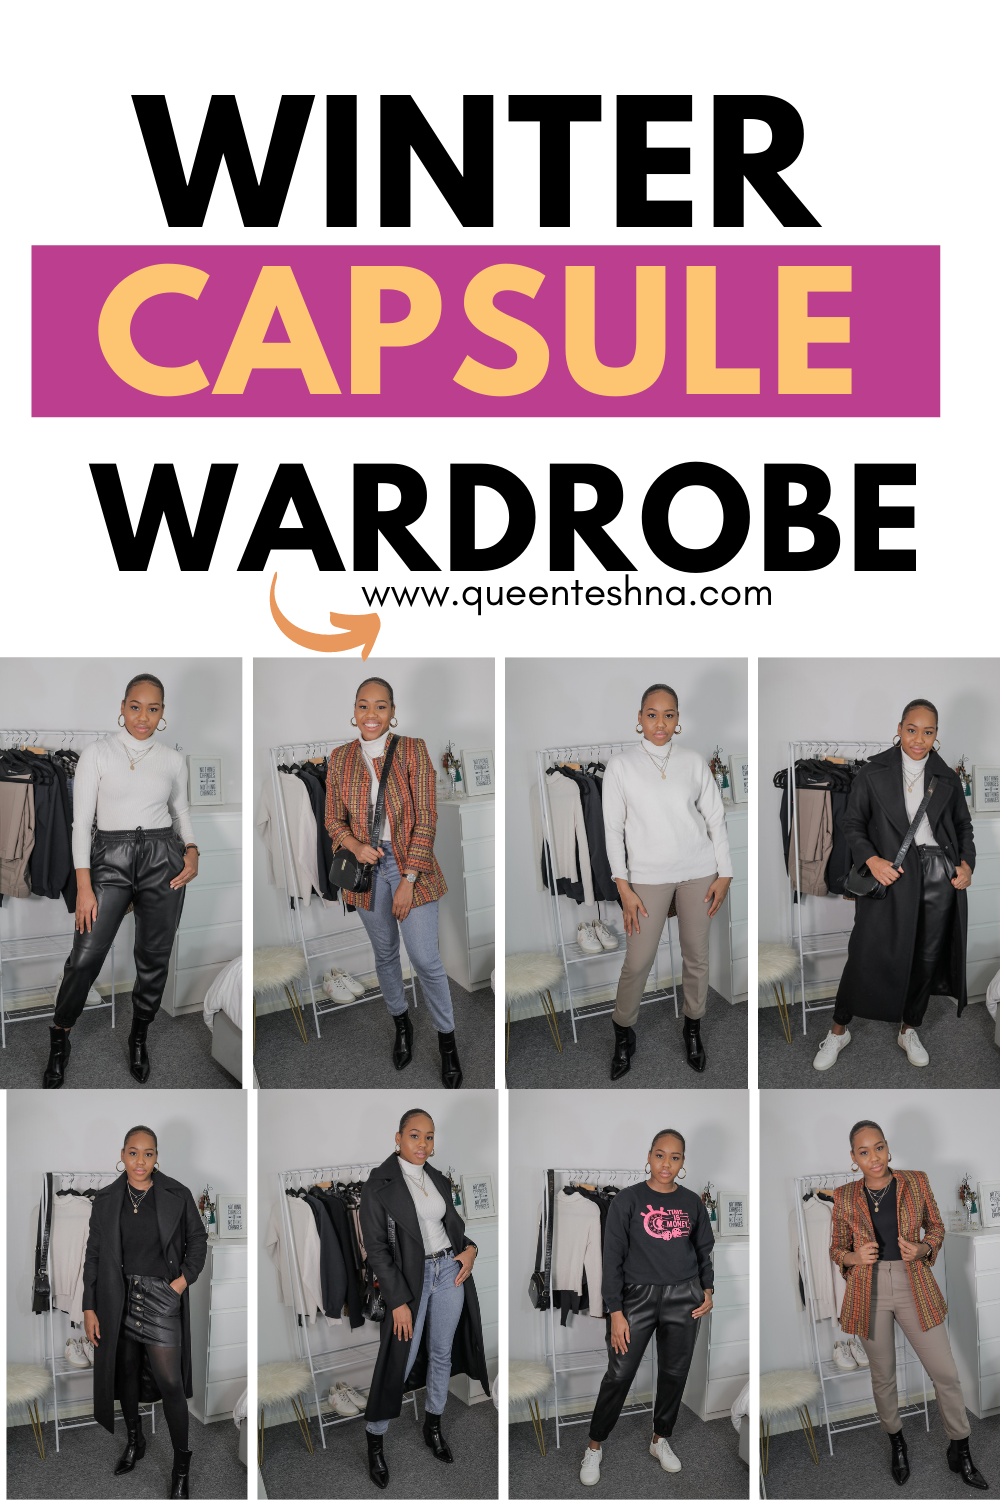 Winter Capsule wardrobe – 15 items over 30 outfits